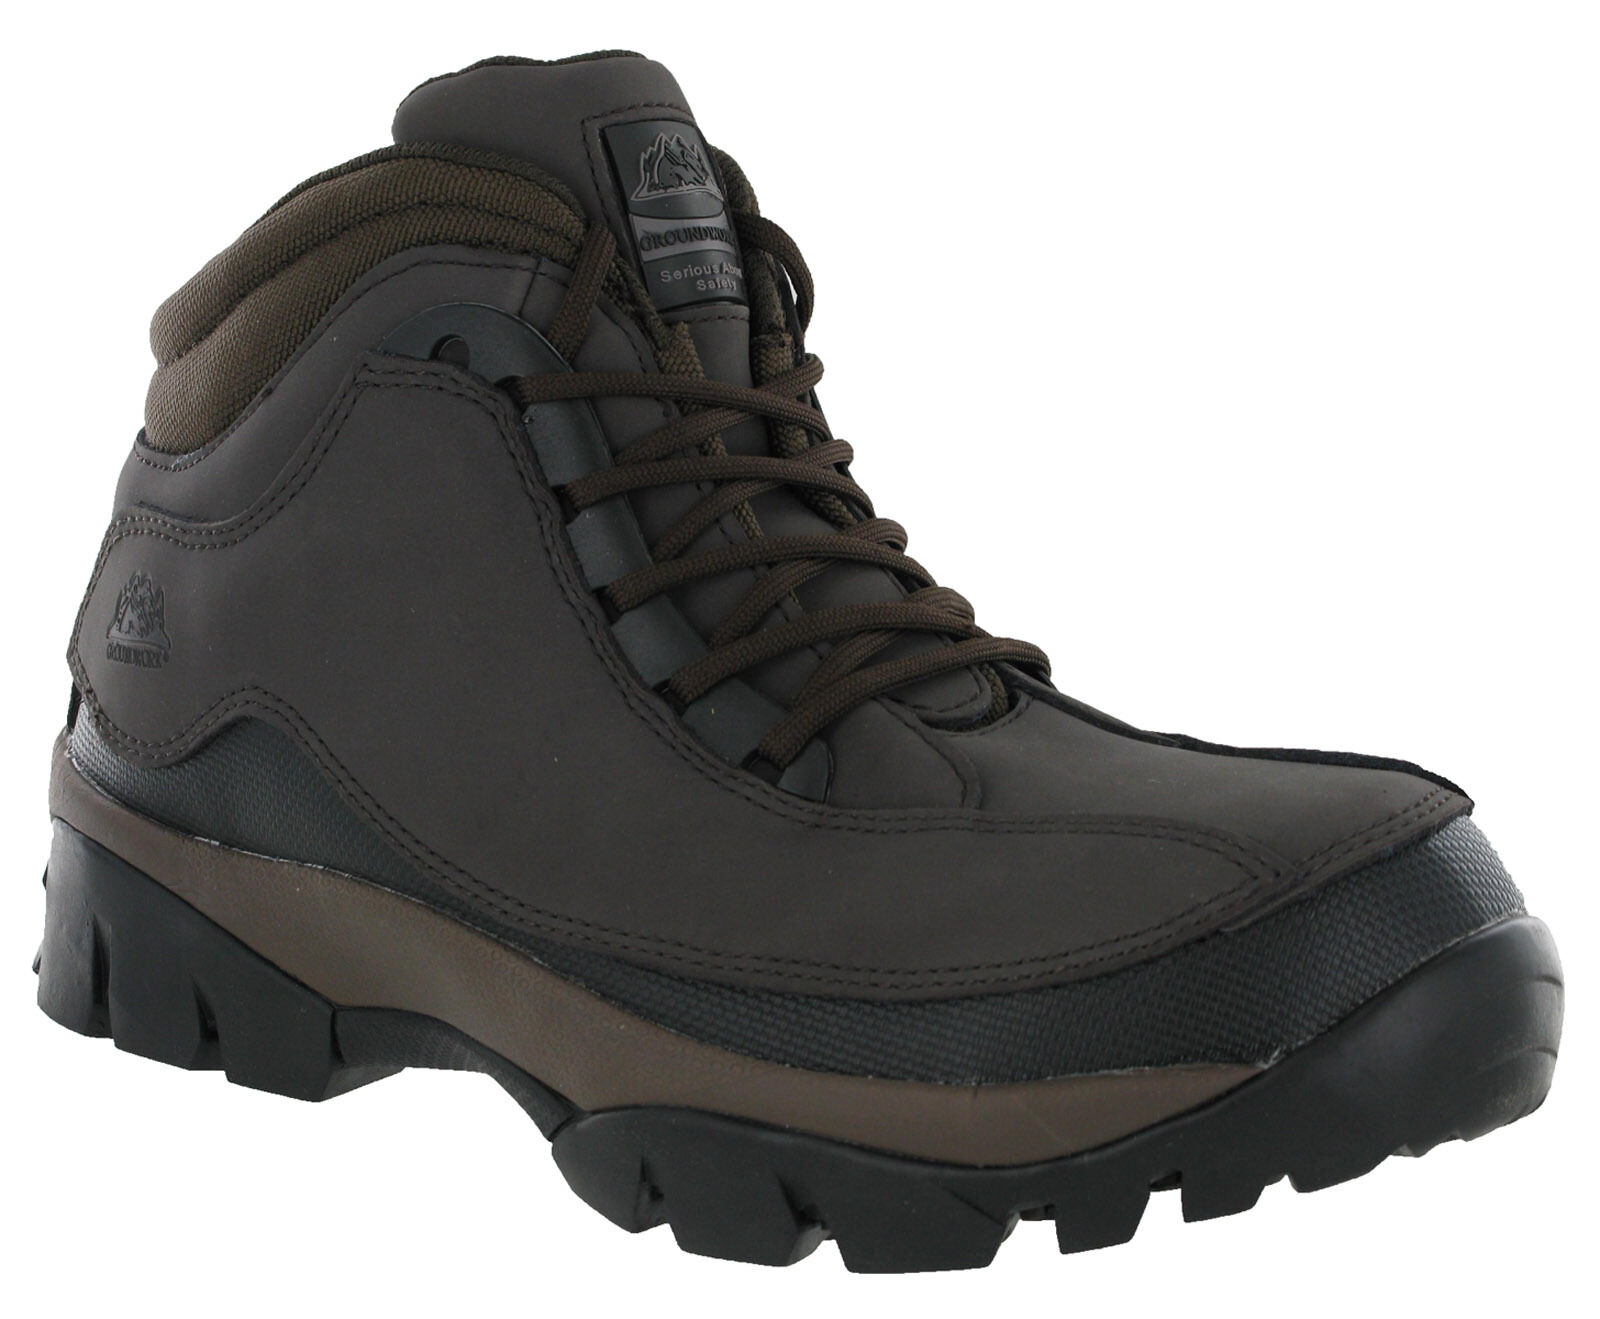 Groundwork Brown Safety Boots Steel Toe Cap Mens Work Industrial Lace Up Shoes